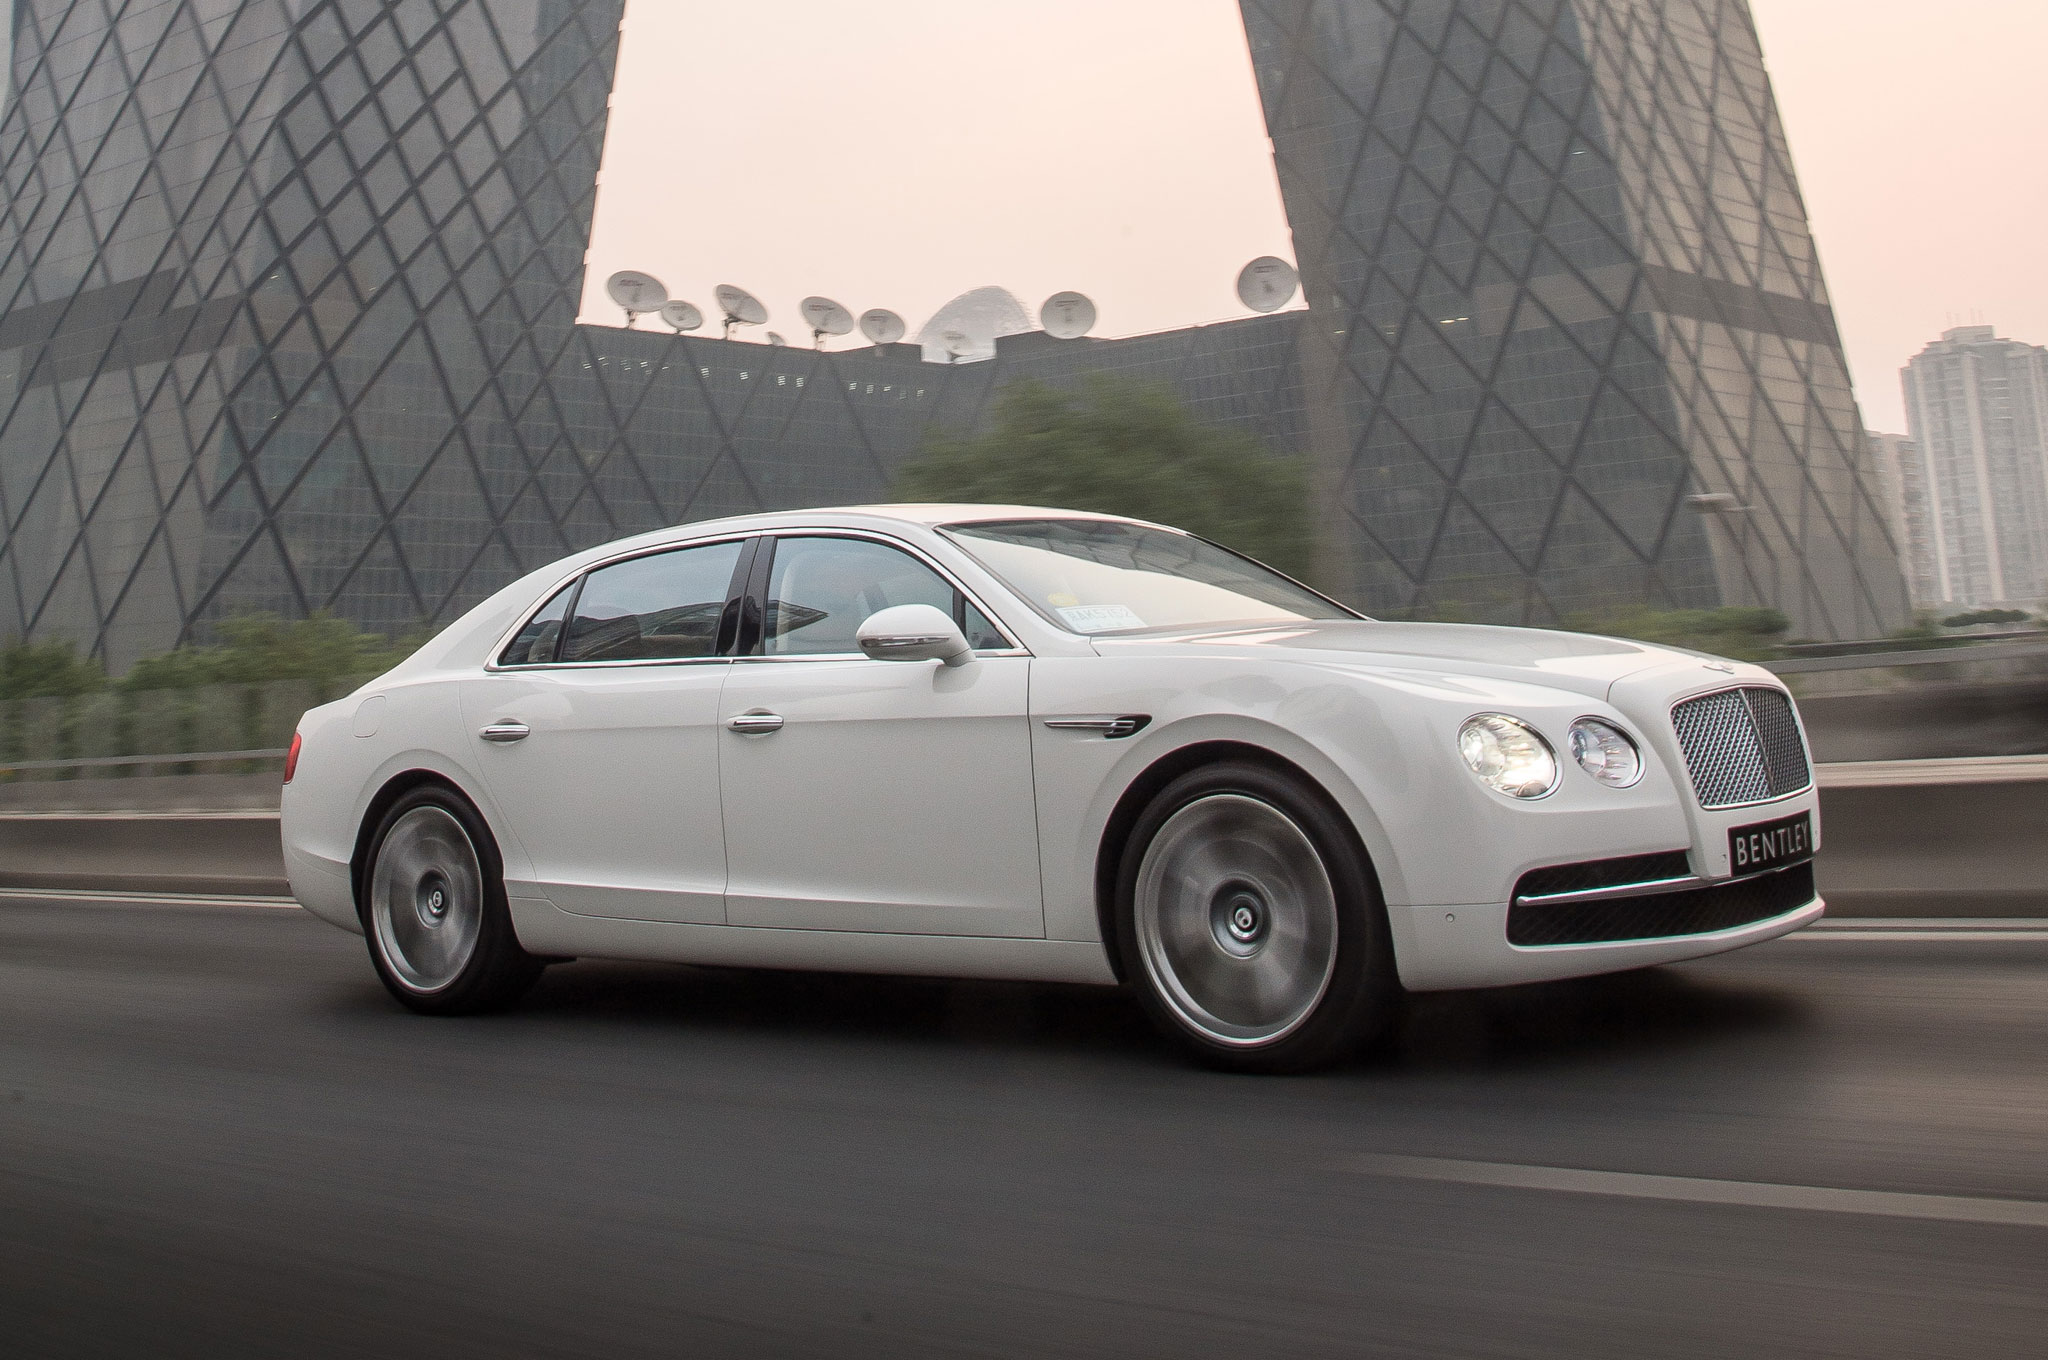 2014 Bentley Flying Spur First Drive - Automobile Magazine